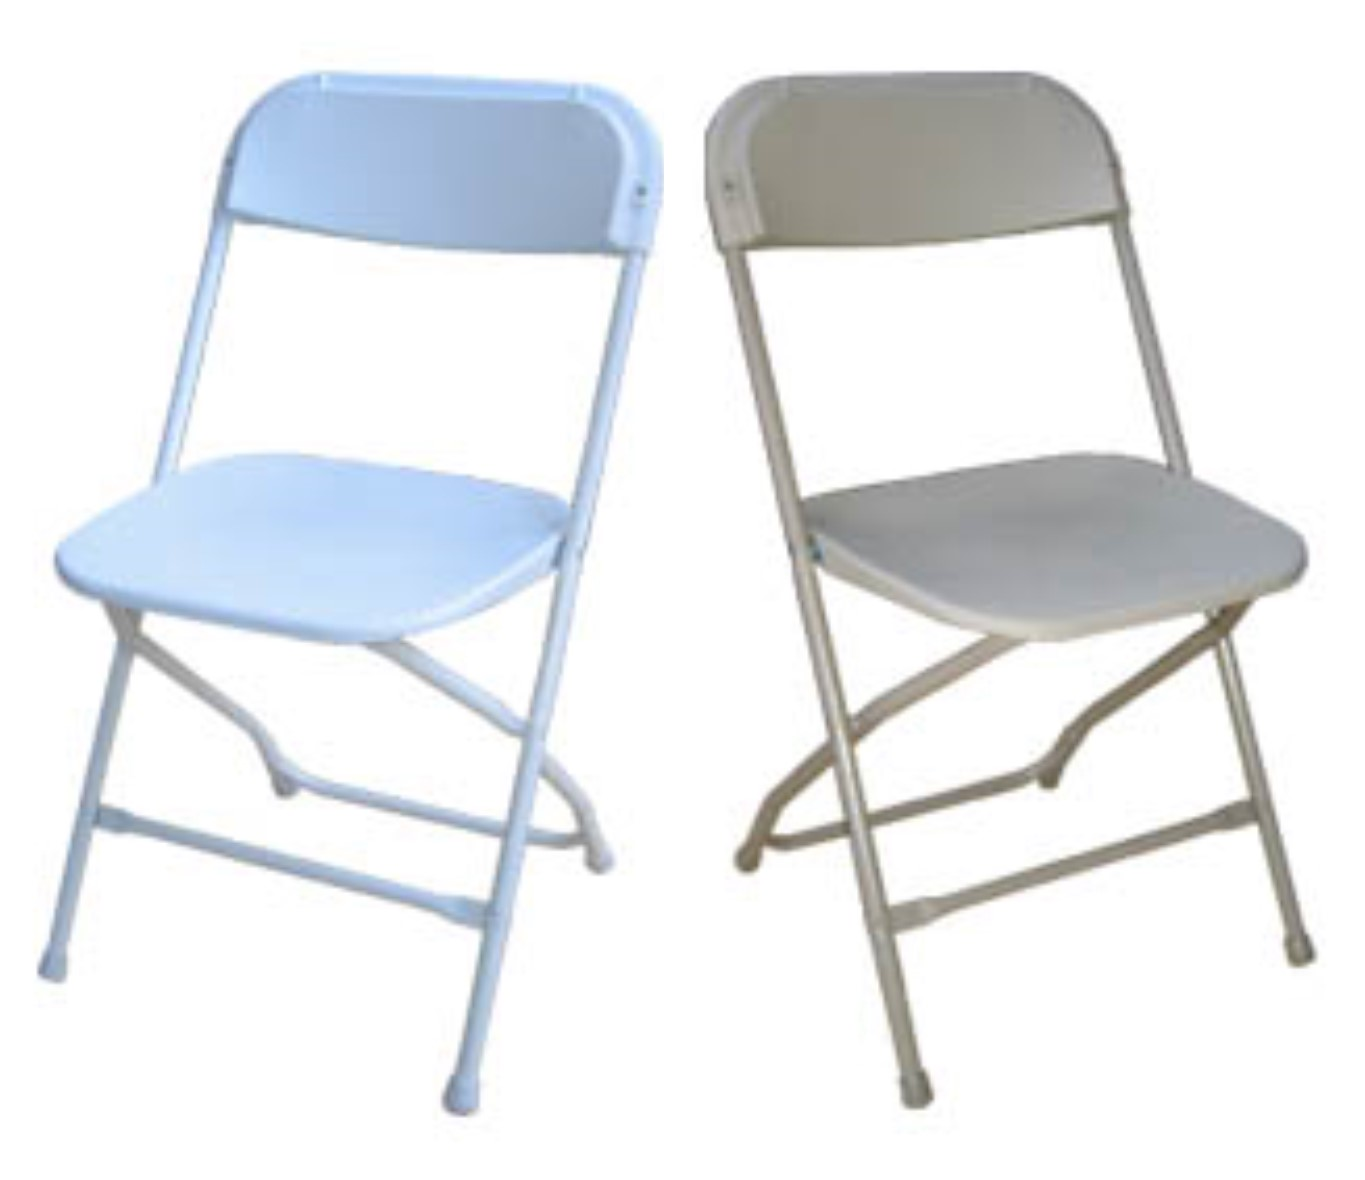 Plastic Folding Chairs Rentals